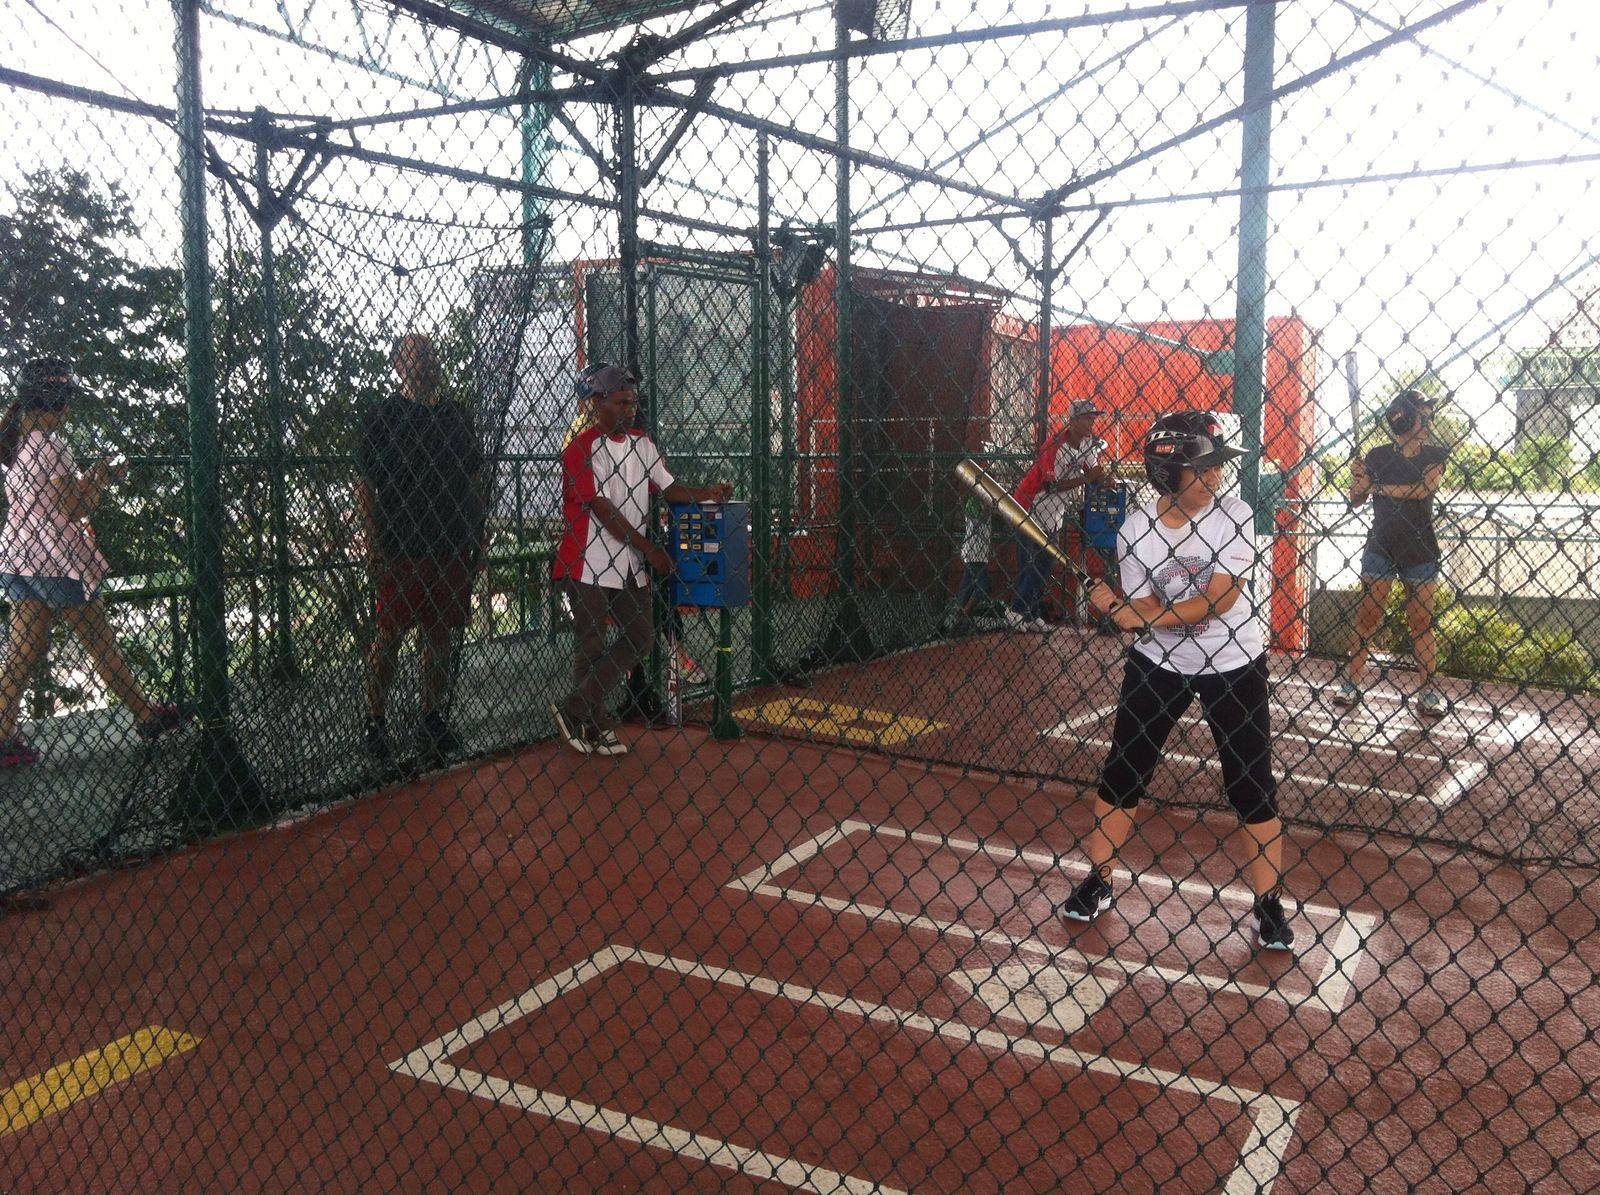 Image from It's A Hit! Battling Cages